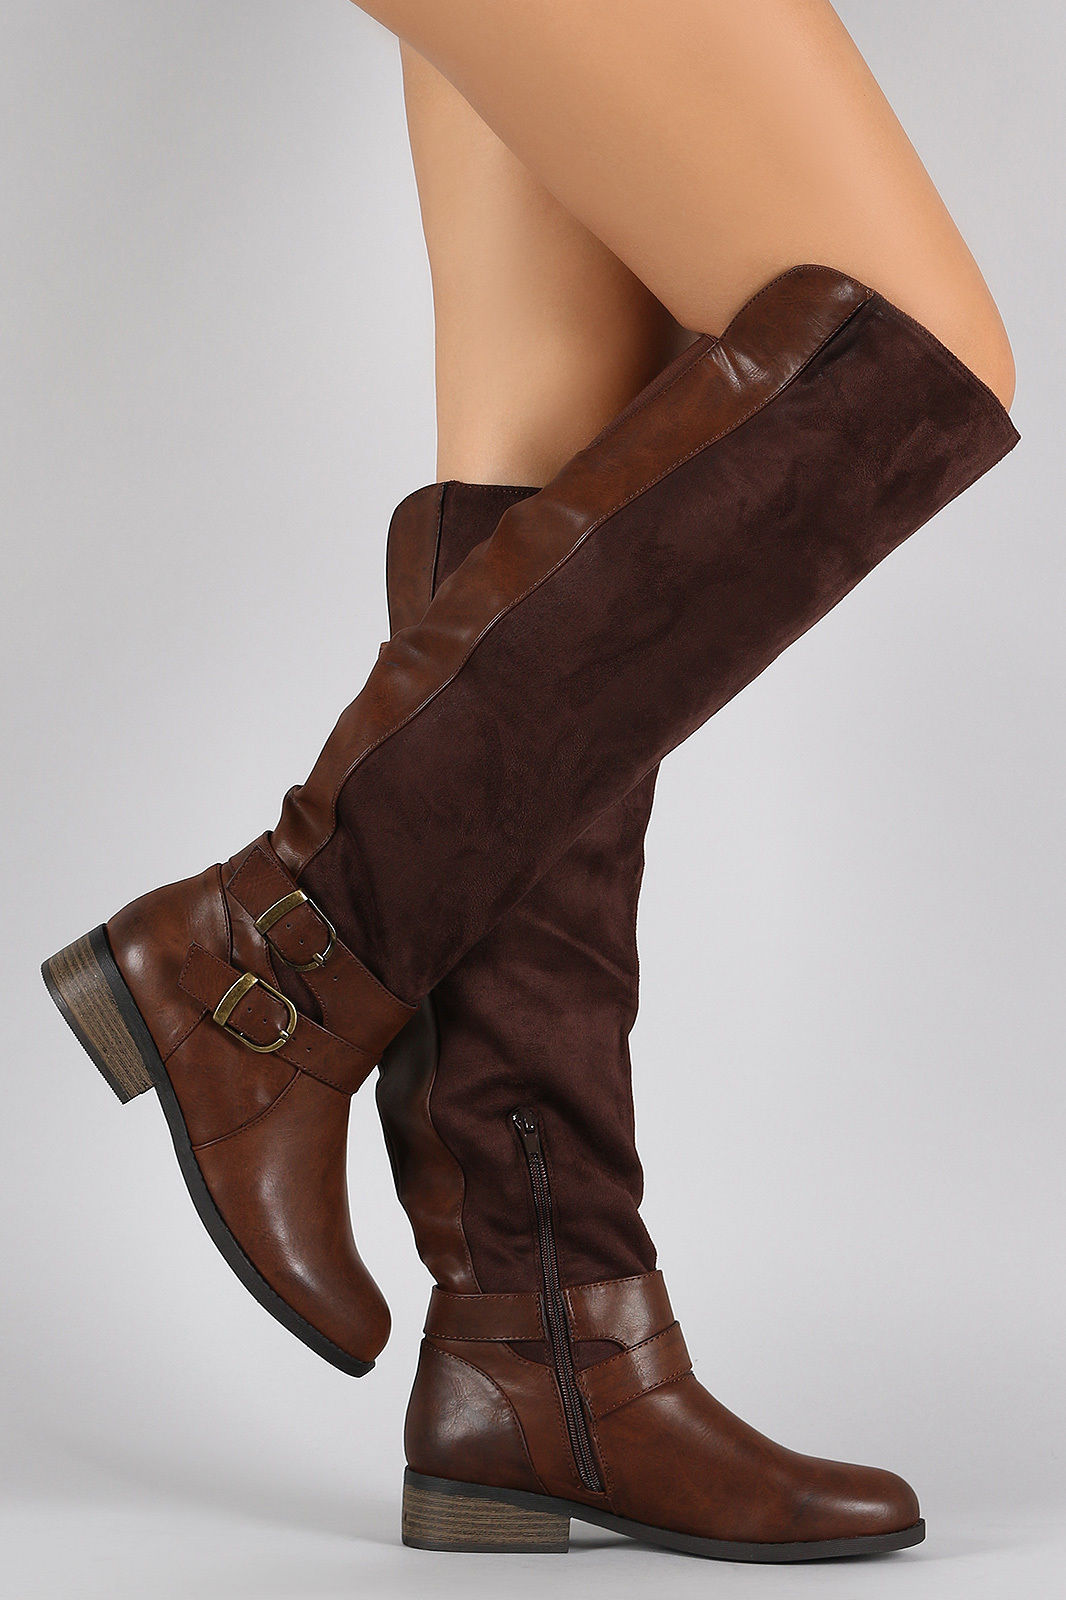 Overstock uses cookies to ensure you get the best experience on our site. Shop all Women's Boots On Sale. Shop by Brand. Sorel. Frye. BearPaw. Clarks. Skechers. Dr. Martens. Shop by Style. Journee Collection Women's 'Charming' Regular and Wide-calf Knee-high Riding Boot. Reviews. SALE.